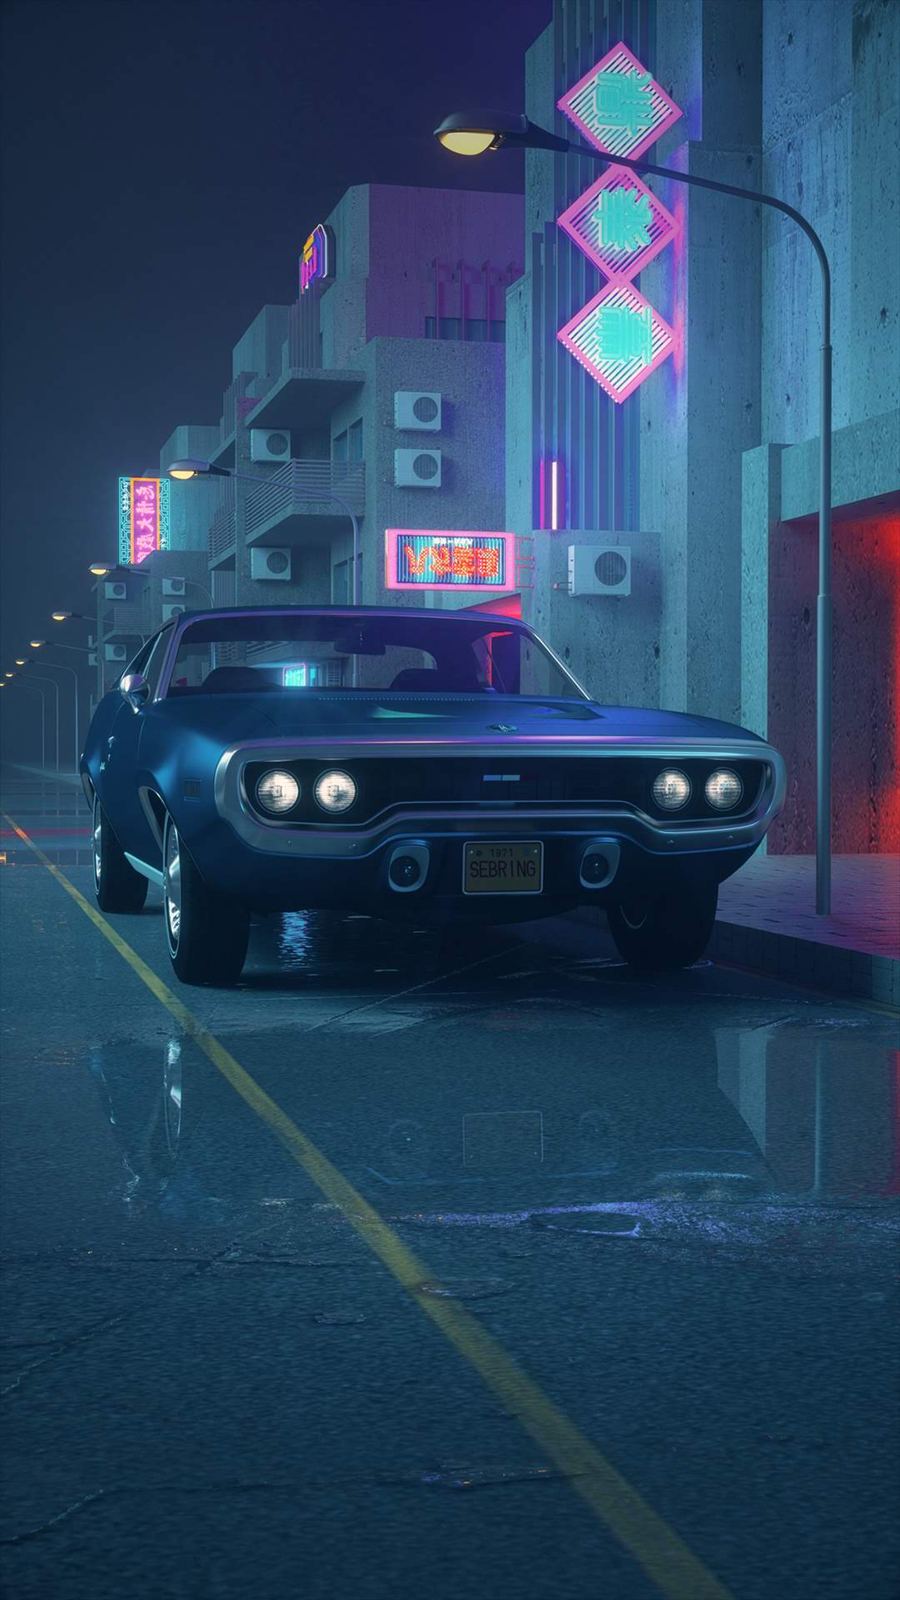 Game Cars Hd Wallpapers Download - American Muscle Cars Wallpaper Hd Iphone , HD Wallpaper & Backgrounds